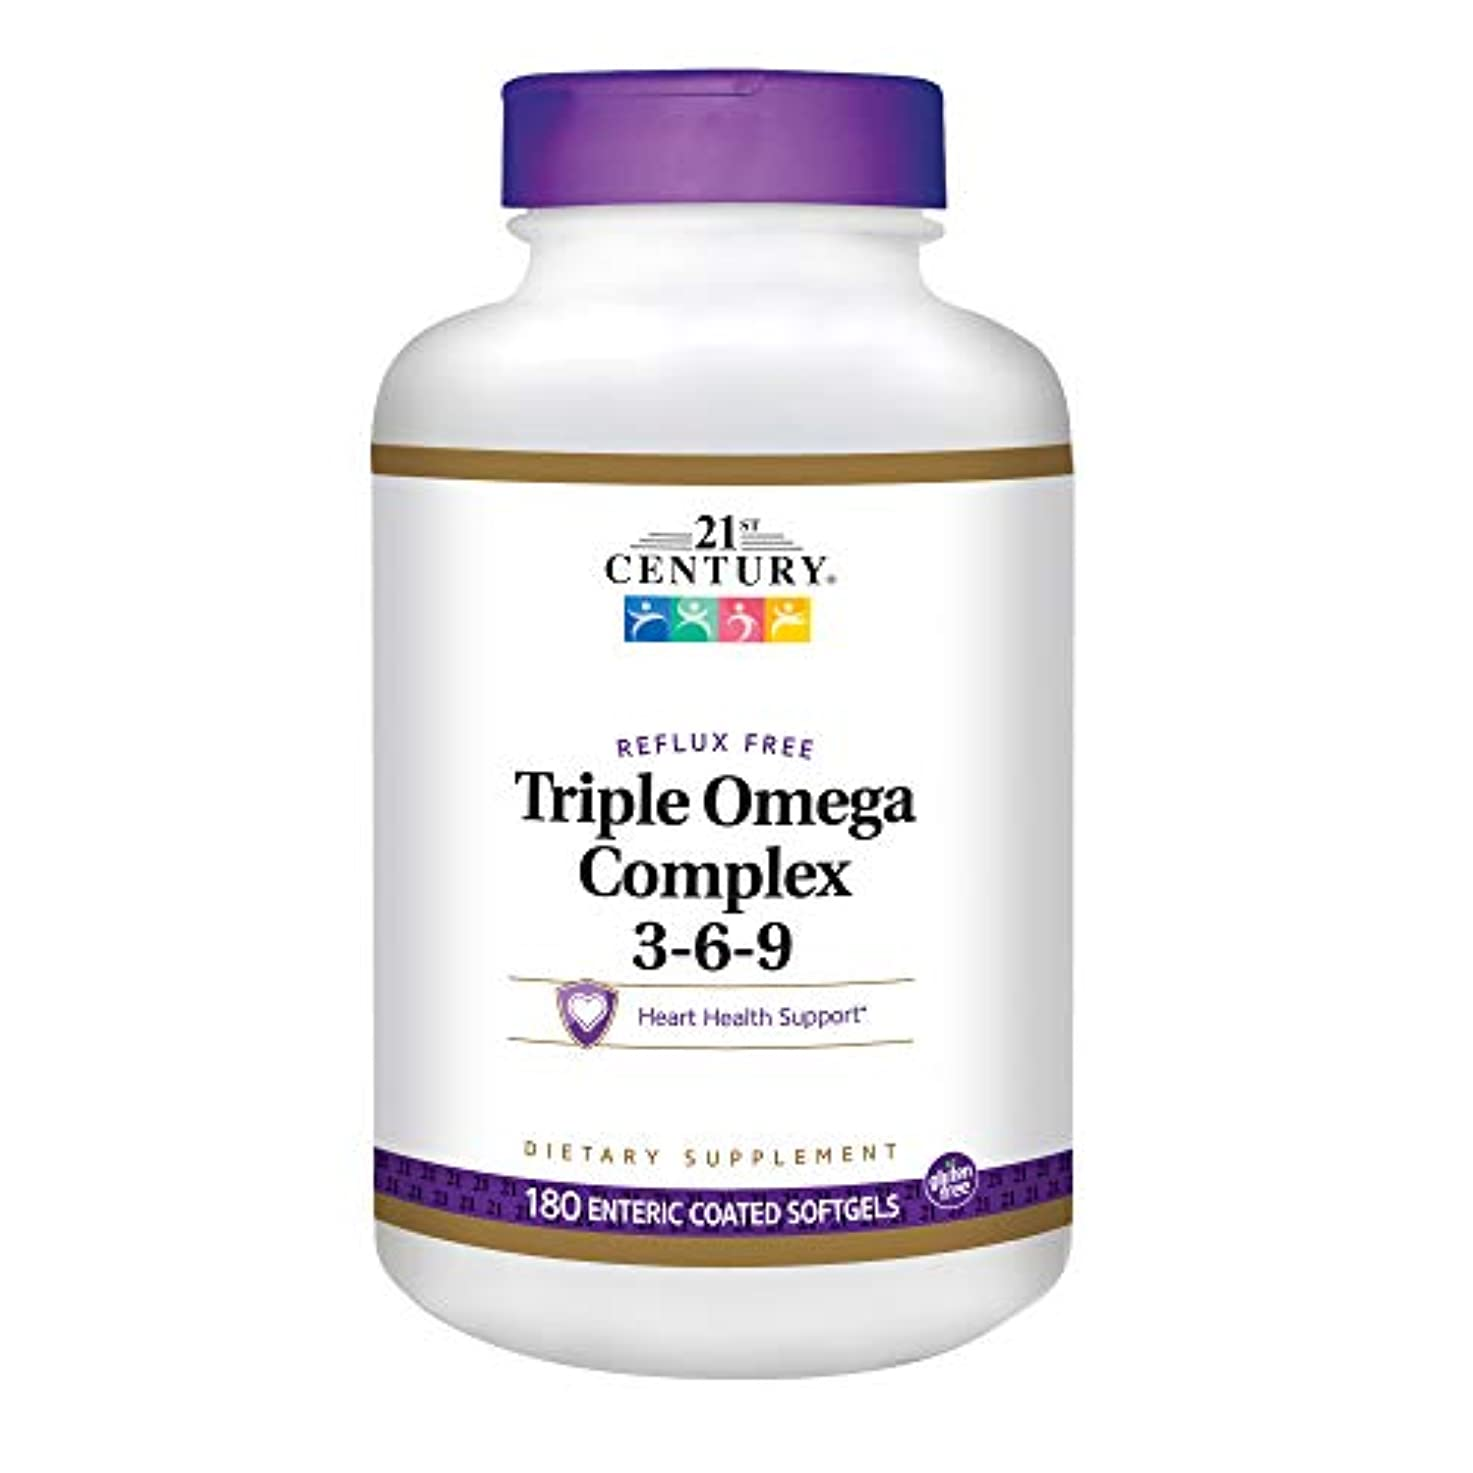 道路を作るプロセスマトンエール21st Century Health Care, Triple Omega Complex 3-6-9, 180 Enteric Coated Softgels